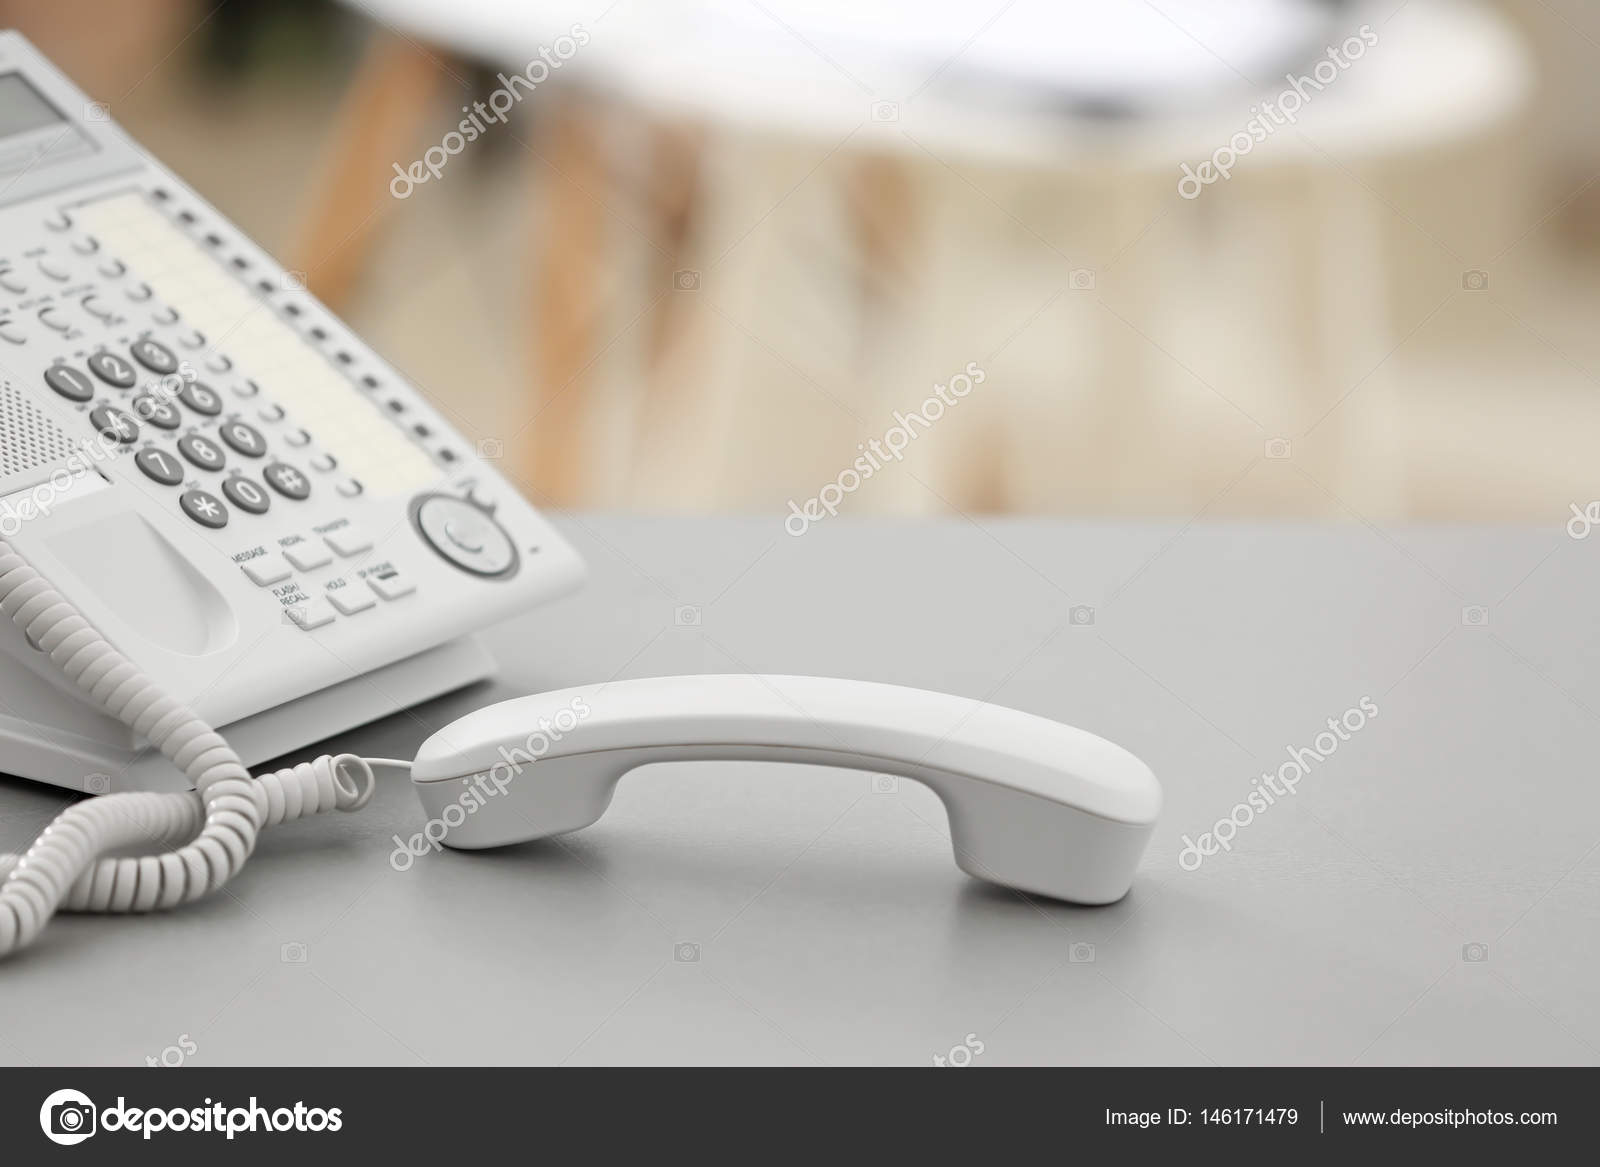 Chaise Longue Telephone Table Telephone With Picked Up Receiver Stock Photo Belchonock